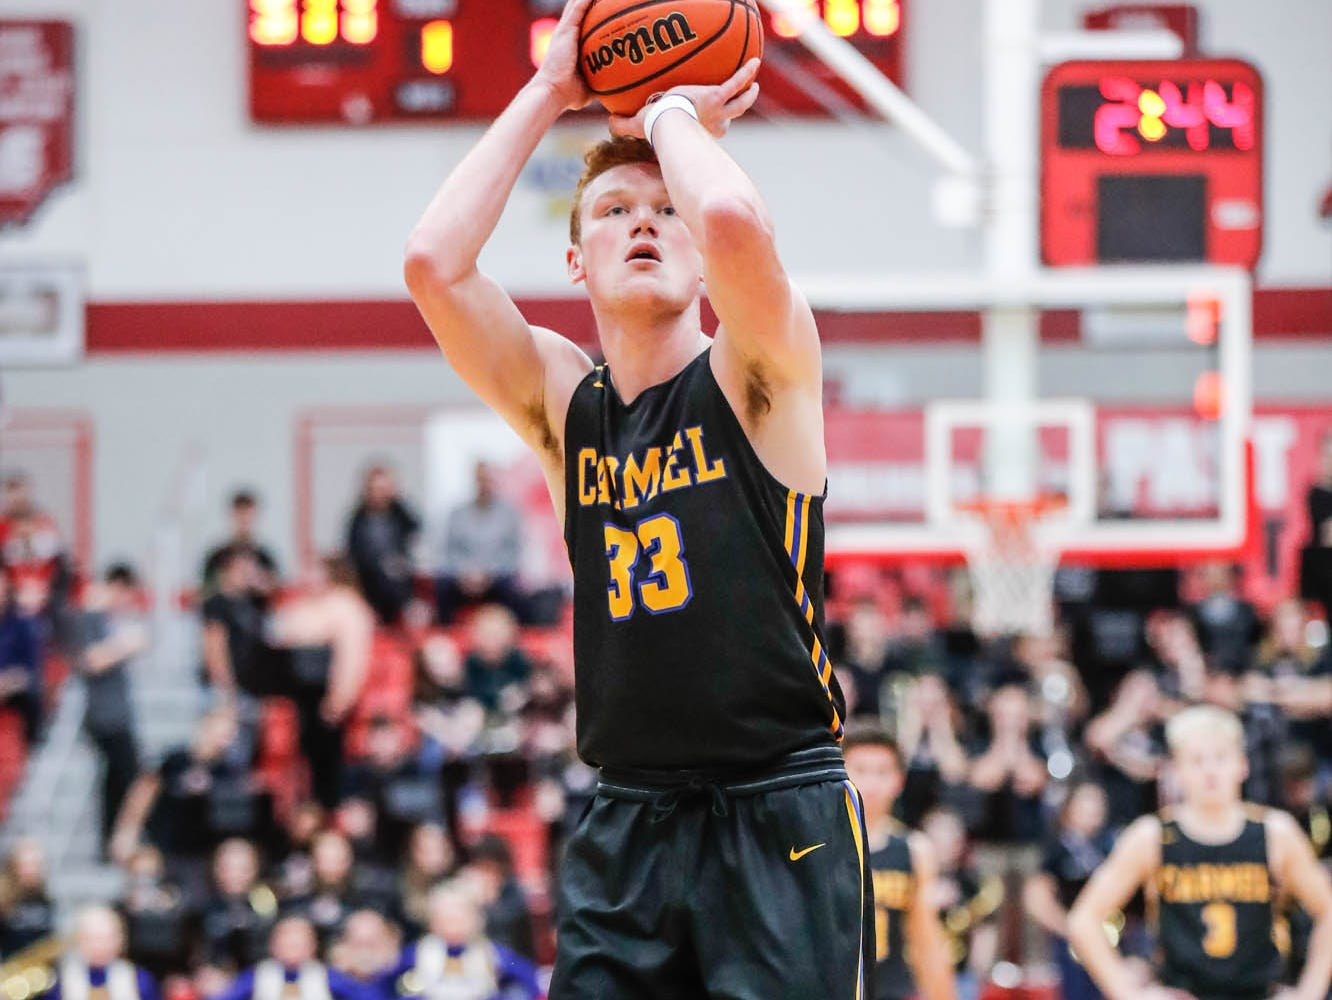 Carmel High School's John Michael Mulloy (33), shoots a free throw, during a game between Center Grove High School and Carmel High School, held at Center Grove on on Friday, Jan. 4, 2019.